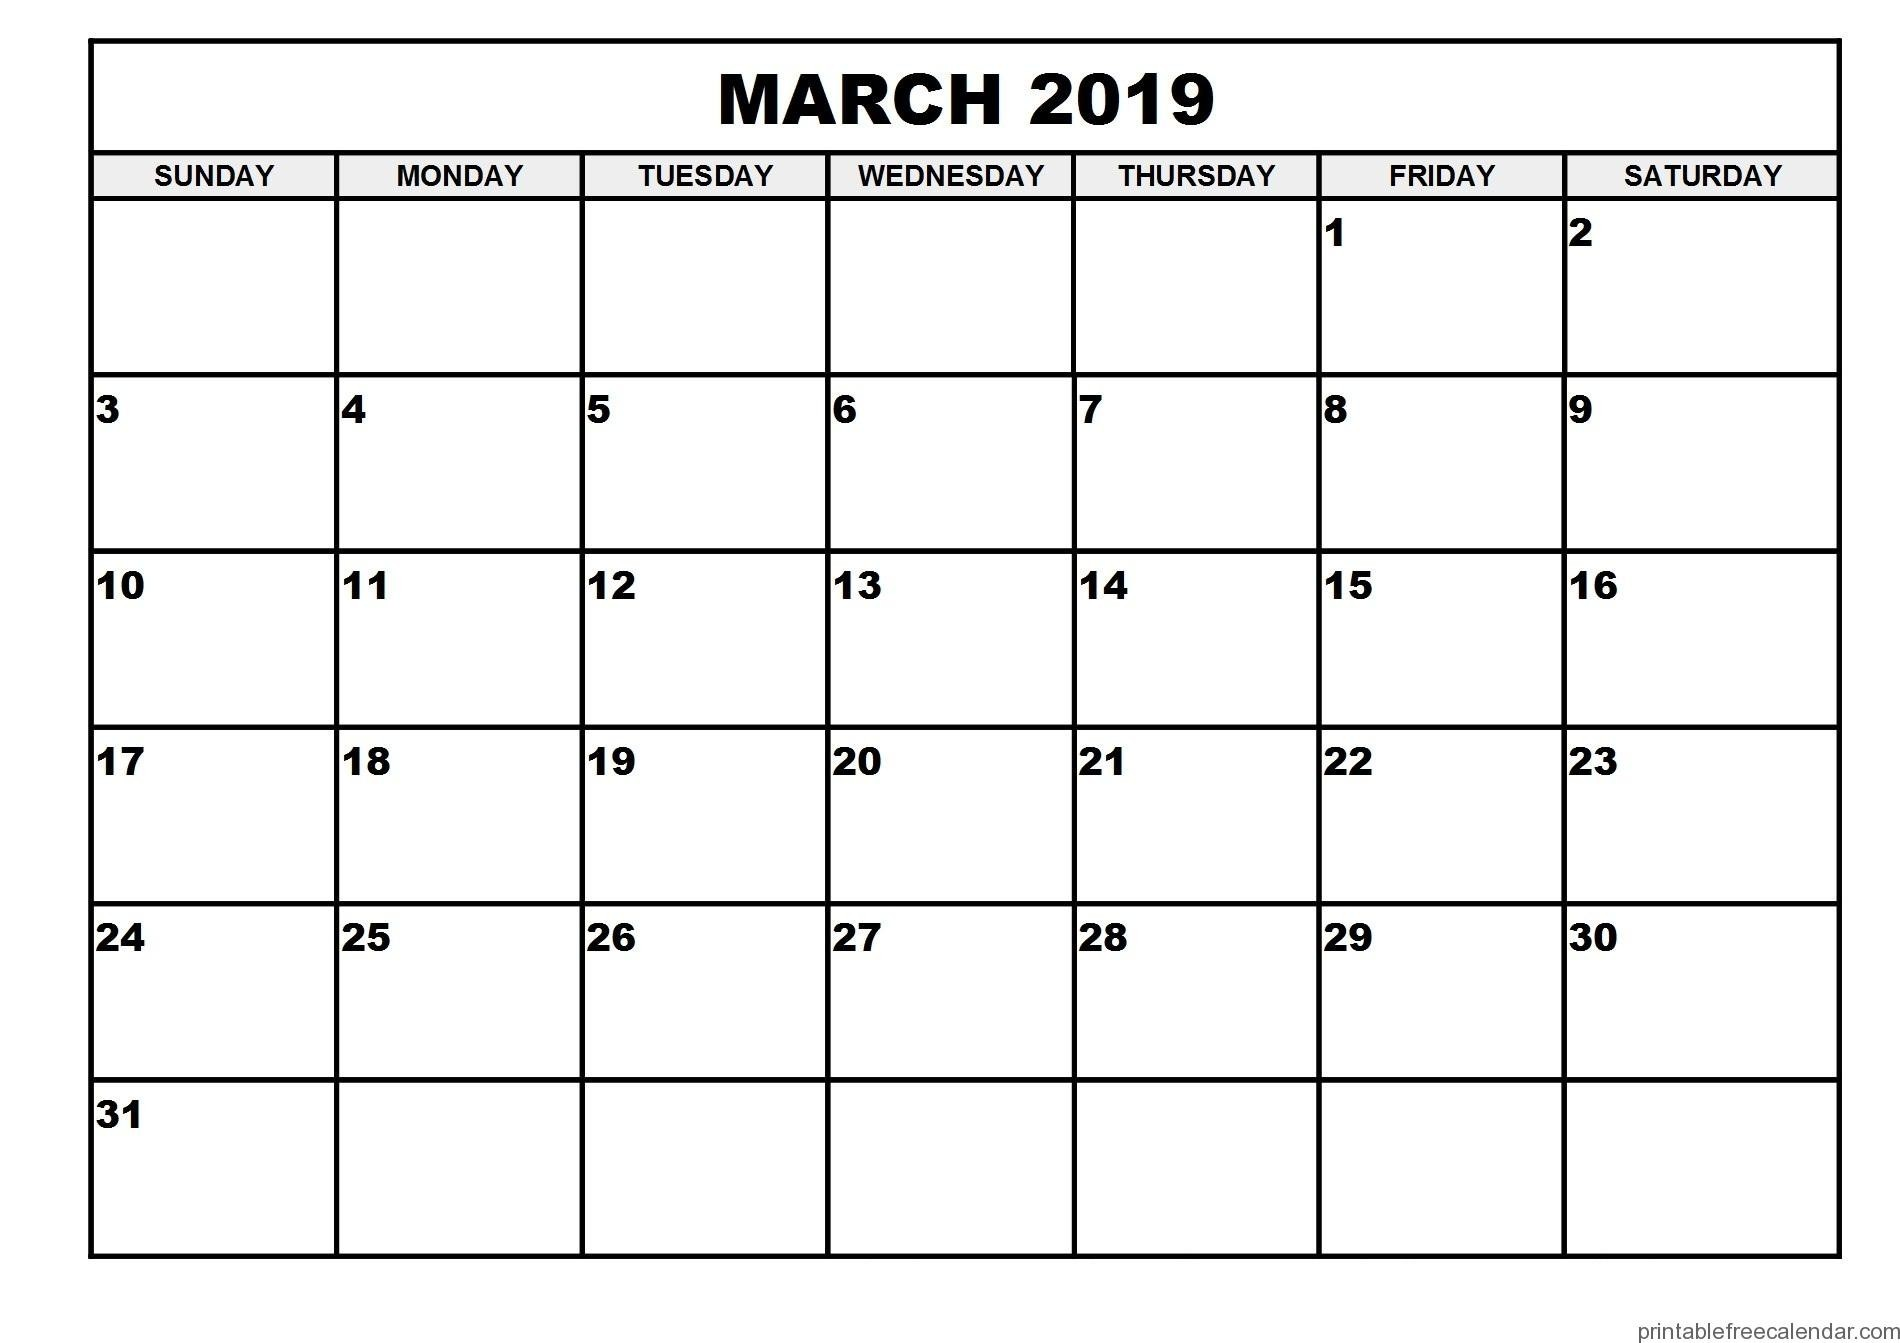 March Calendar Print Out Más Actual Printable Free Calendar Template Lara Expolicenciaslatam Of March Calendar Print Out Más Populares 2018 Calendar Template Excel Glendale Munity Document Template